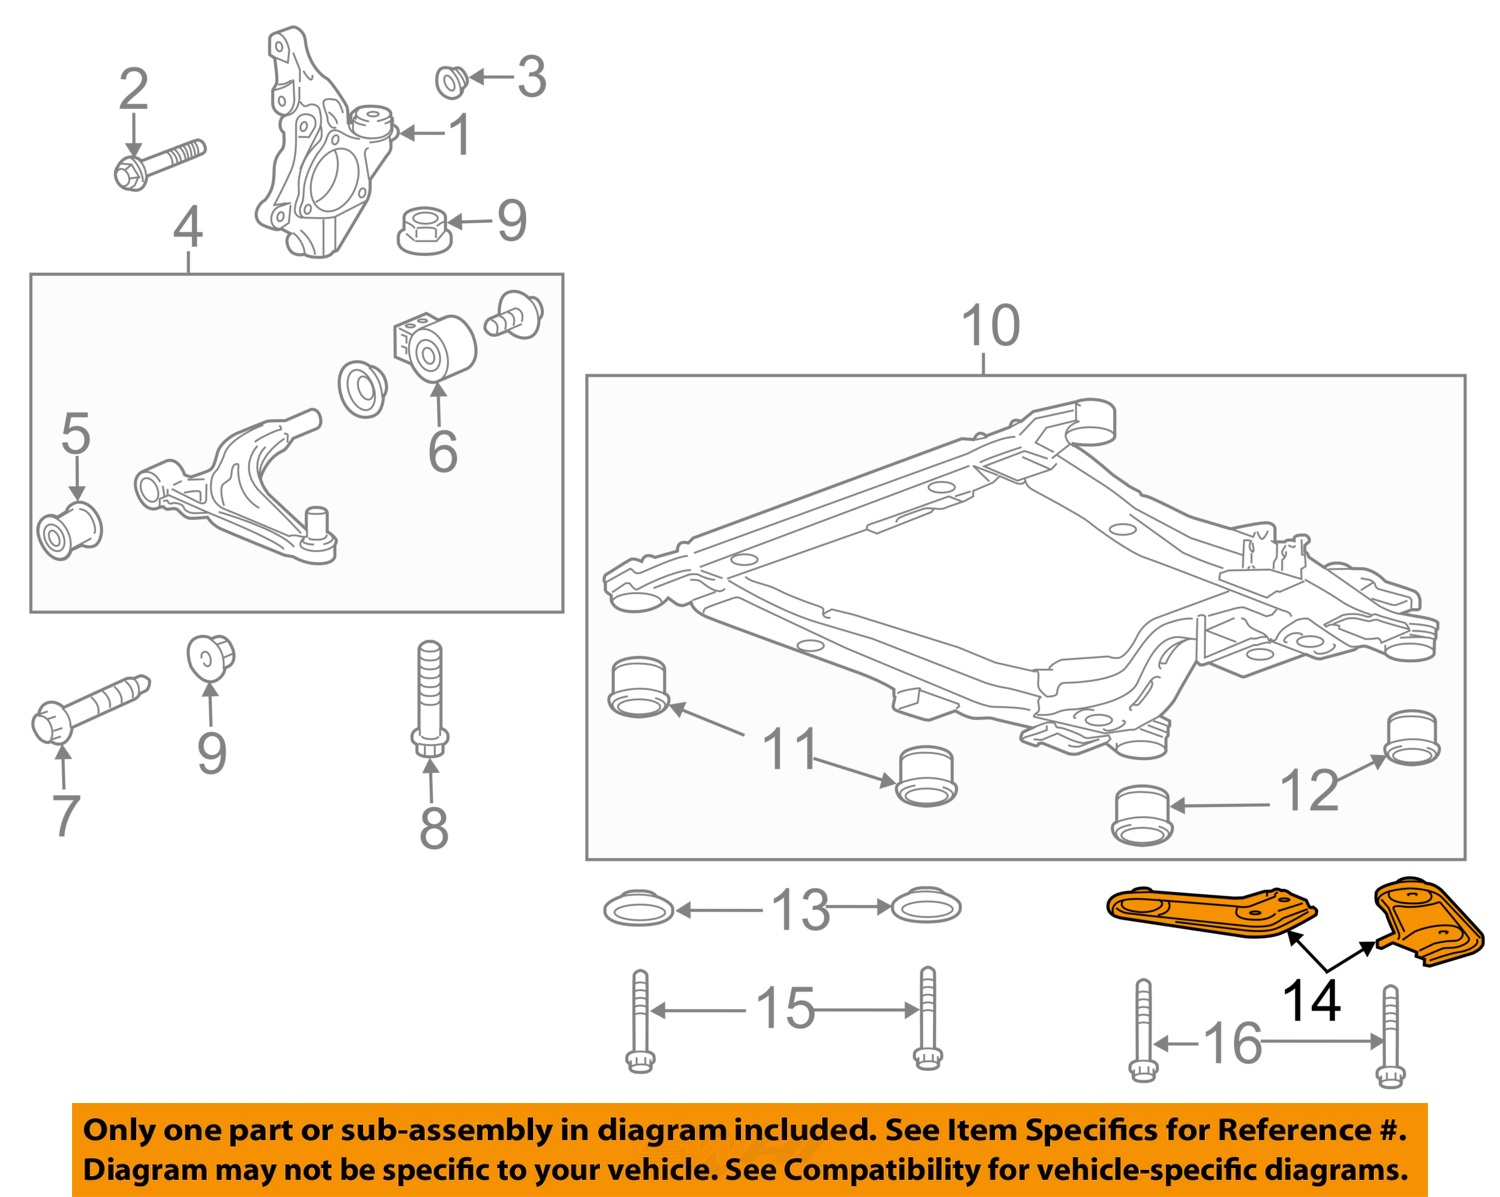 Buick Verano Engine Diagram Radio Wiring Diagram \u2022 2001 Buick Regal  Chassis Diagram 2001 Buick Regal Engine Diagram